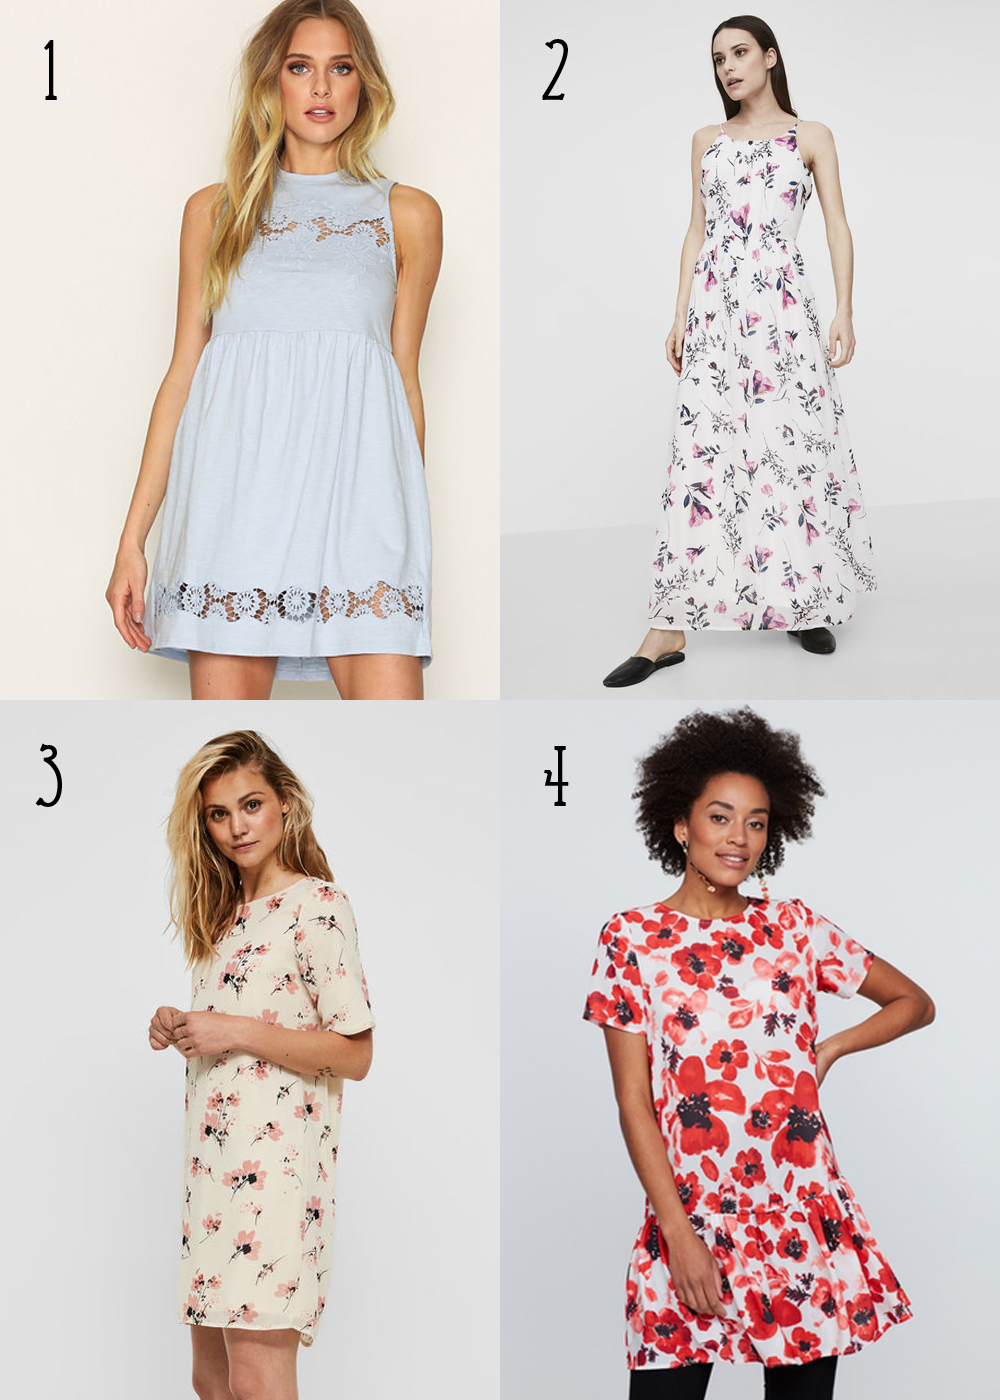 Midsummer dresses